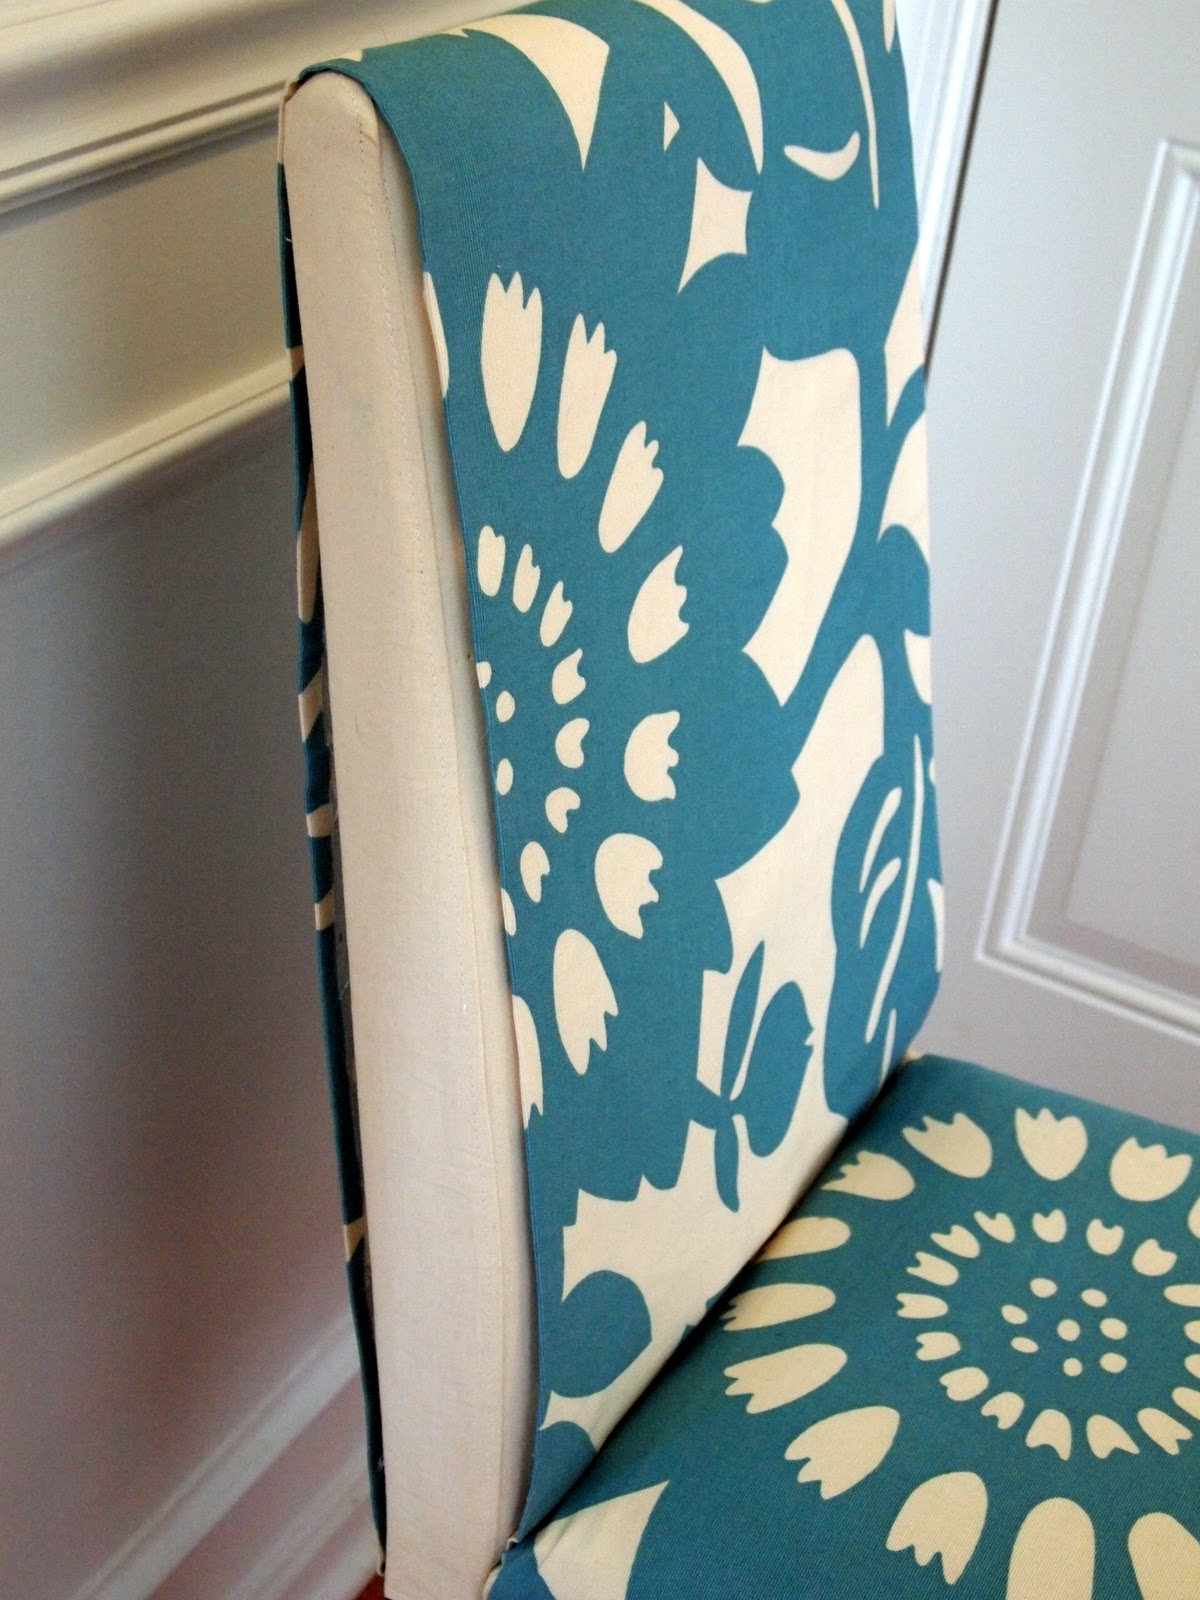 Teal Chair Covers White Outdoor Rocking Canada Loveyourroom My Morning Slip Cover Project Using Remnant Fabric No Sewing Needed